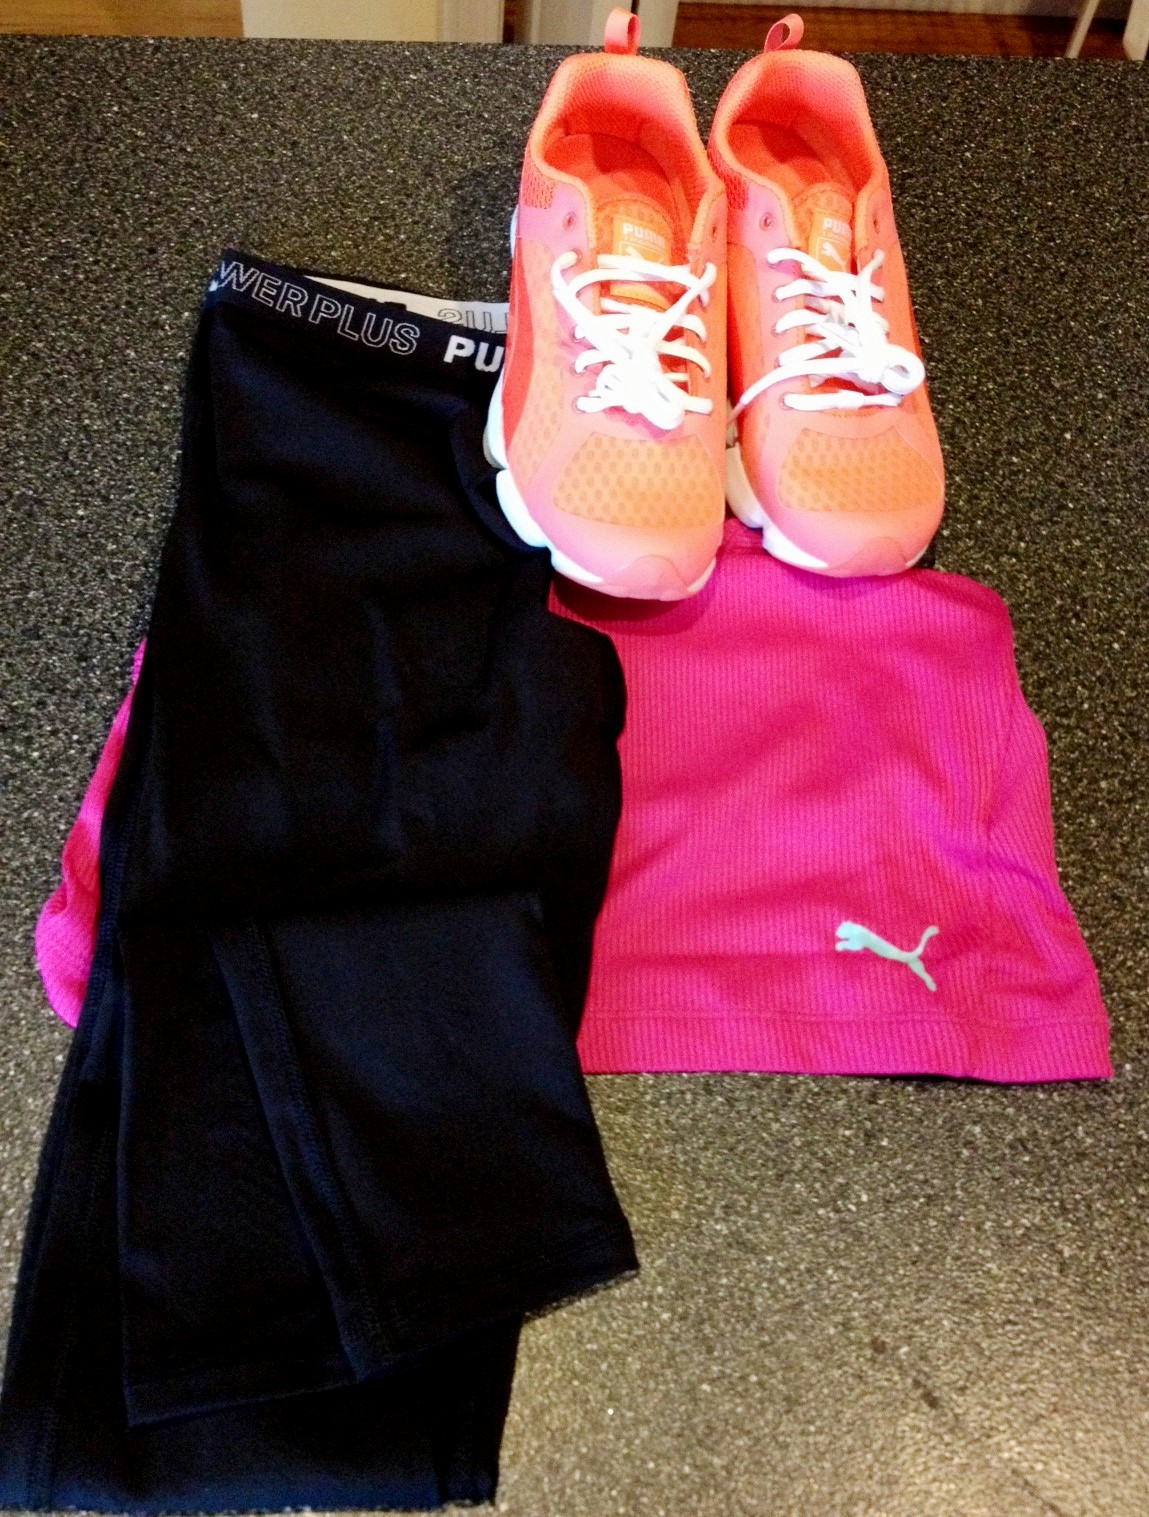 They know my signature workout gear color - pink!